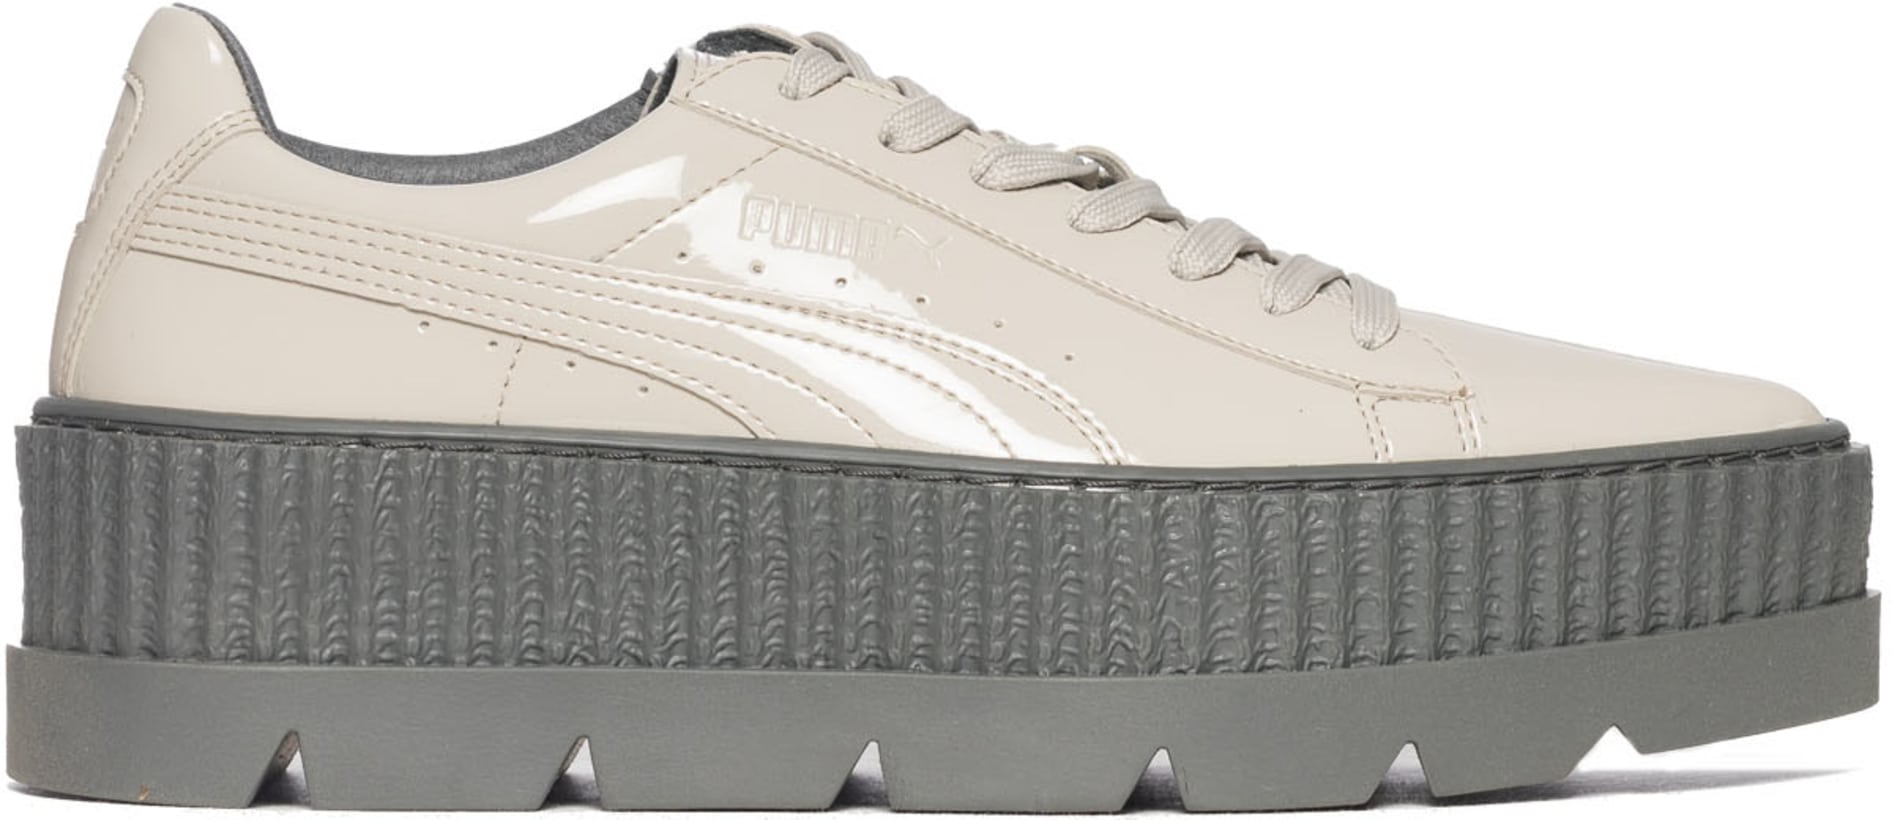 lowest price e2592 67b97 Puma - Fenty Pointy Creeper Patent- Dove/Glacier Grey